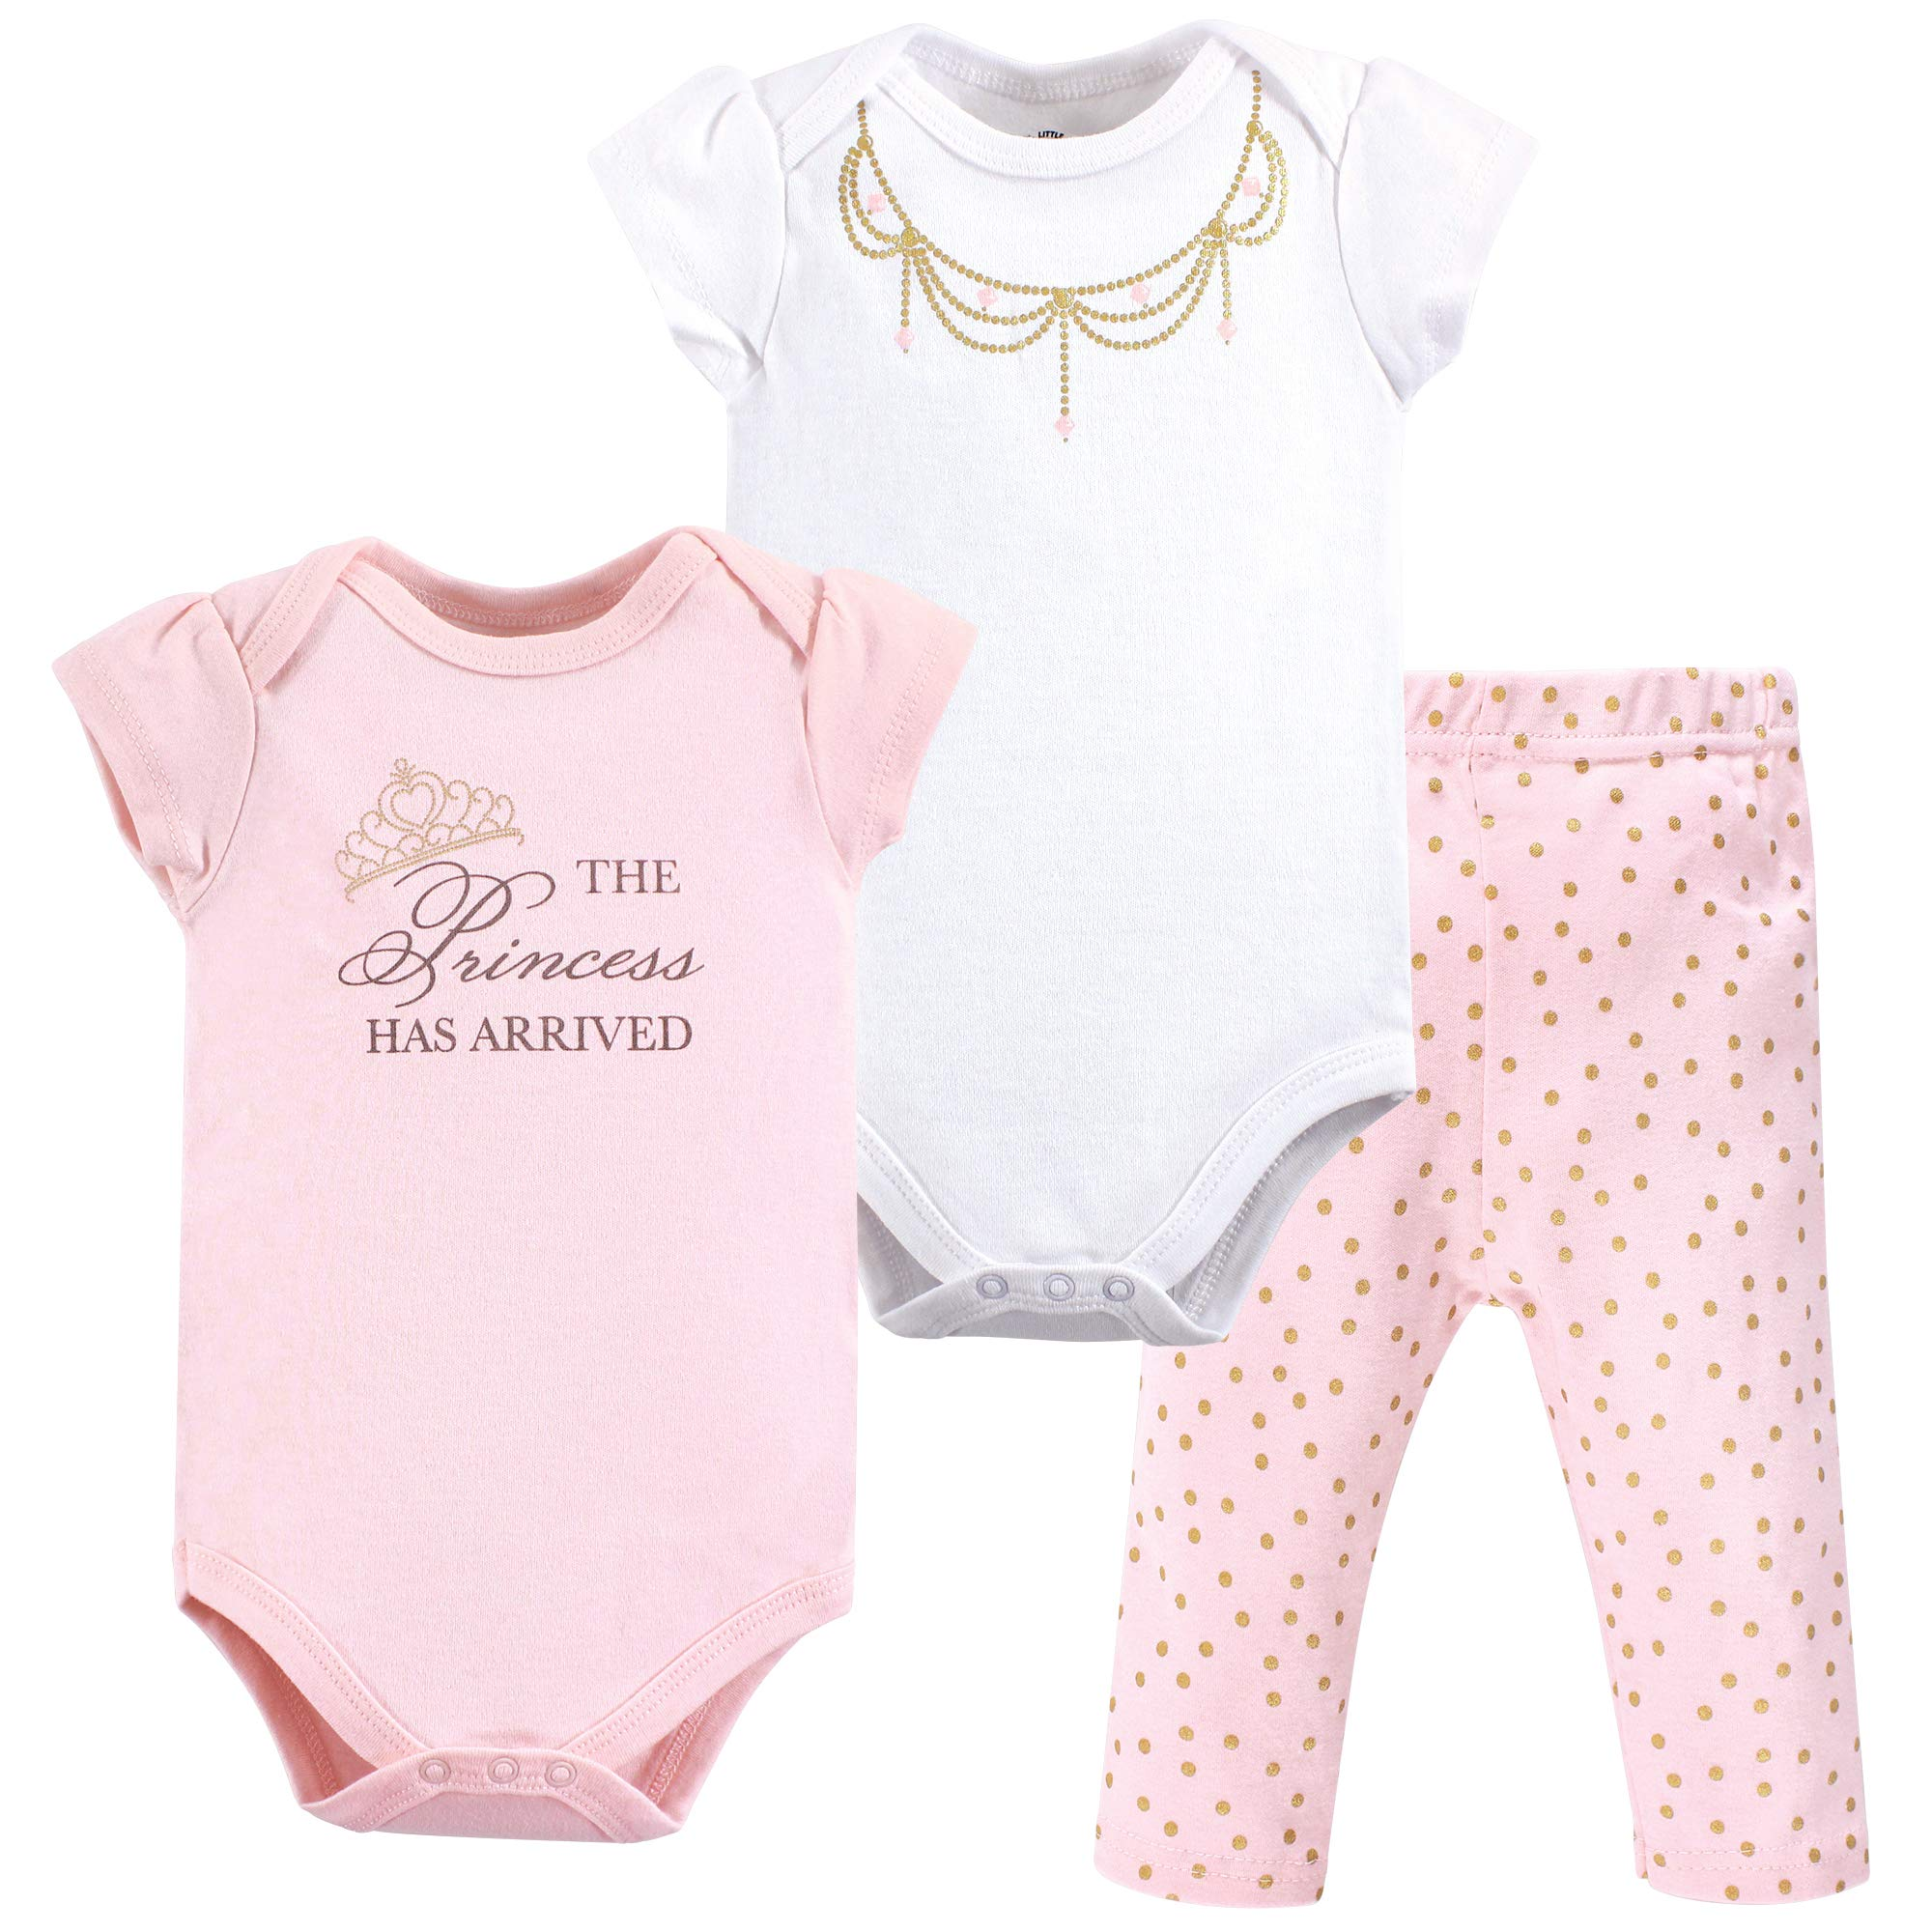 Little Treasure Unisex Baby 2 Bodysuit and Pant